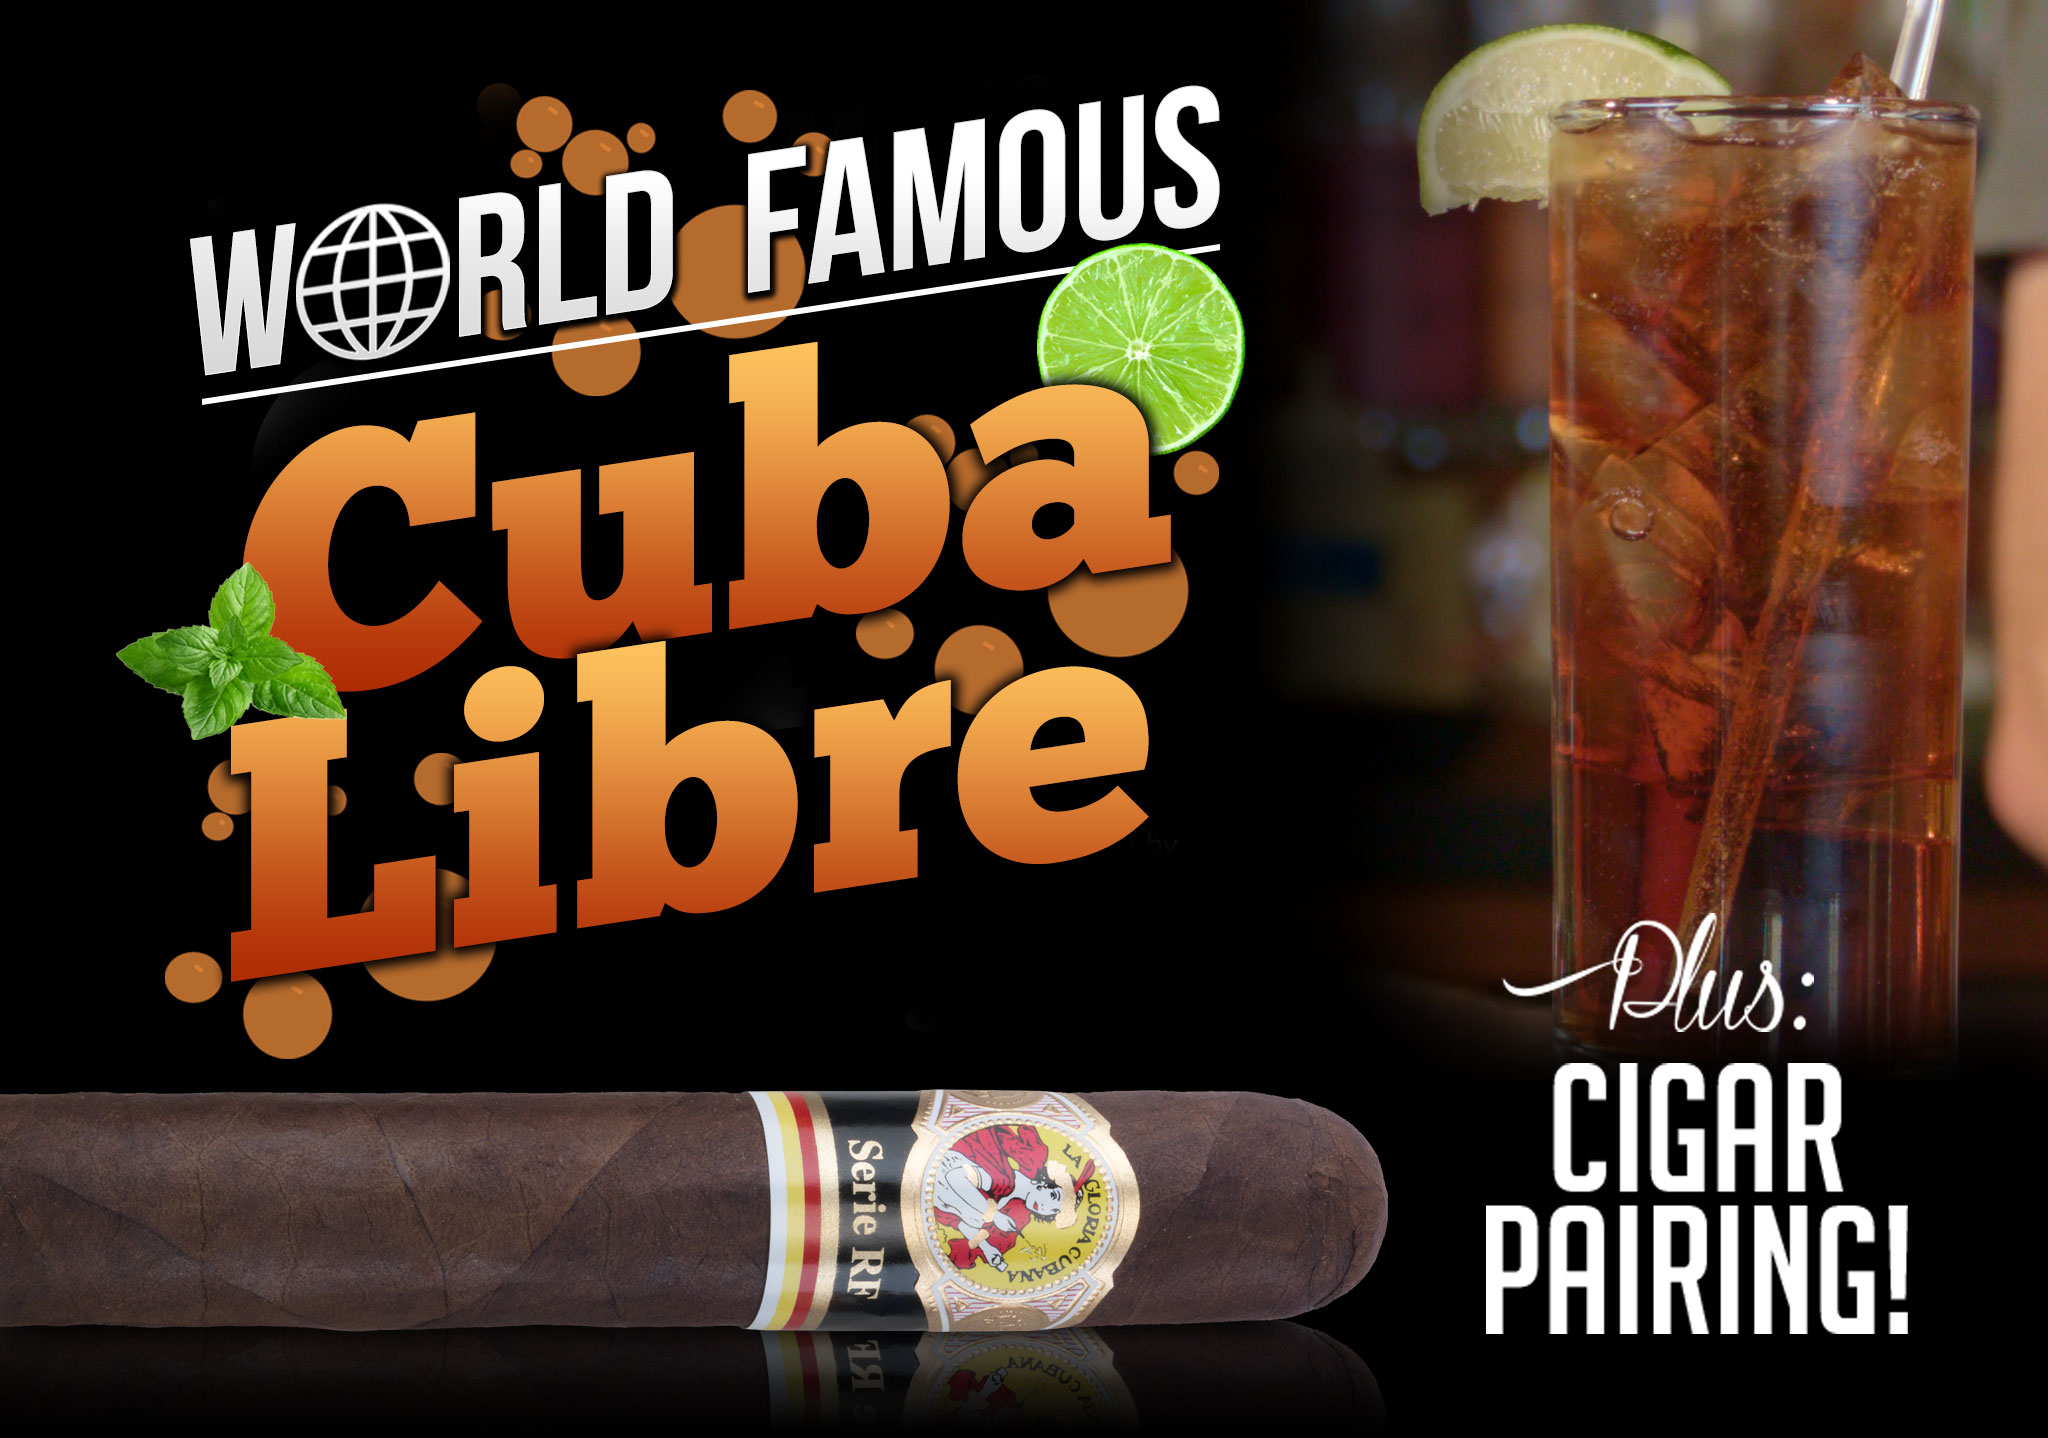 How to Make a Cuba Libre + Cigar Pairing Recommendation